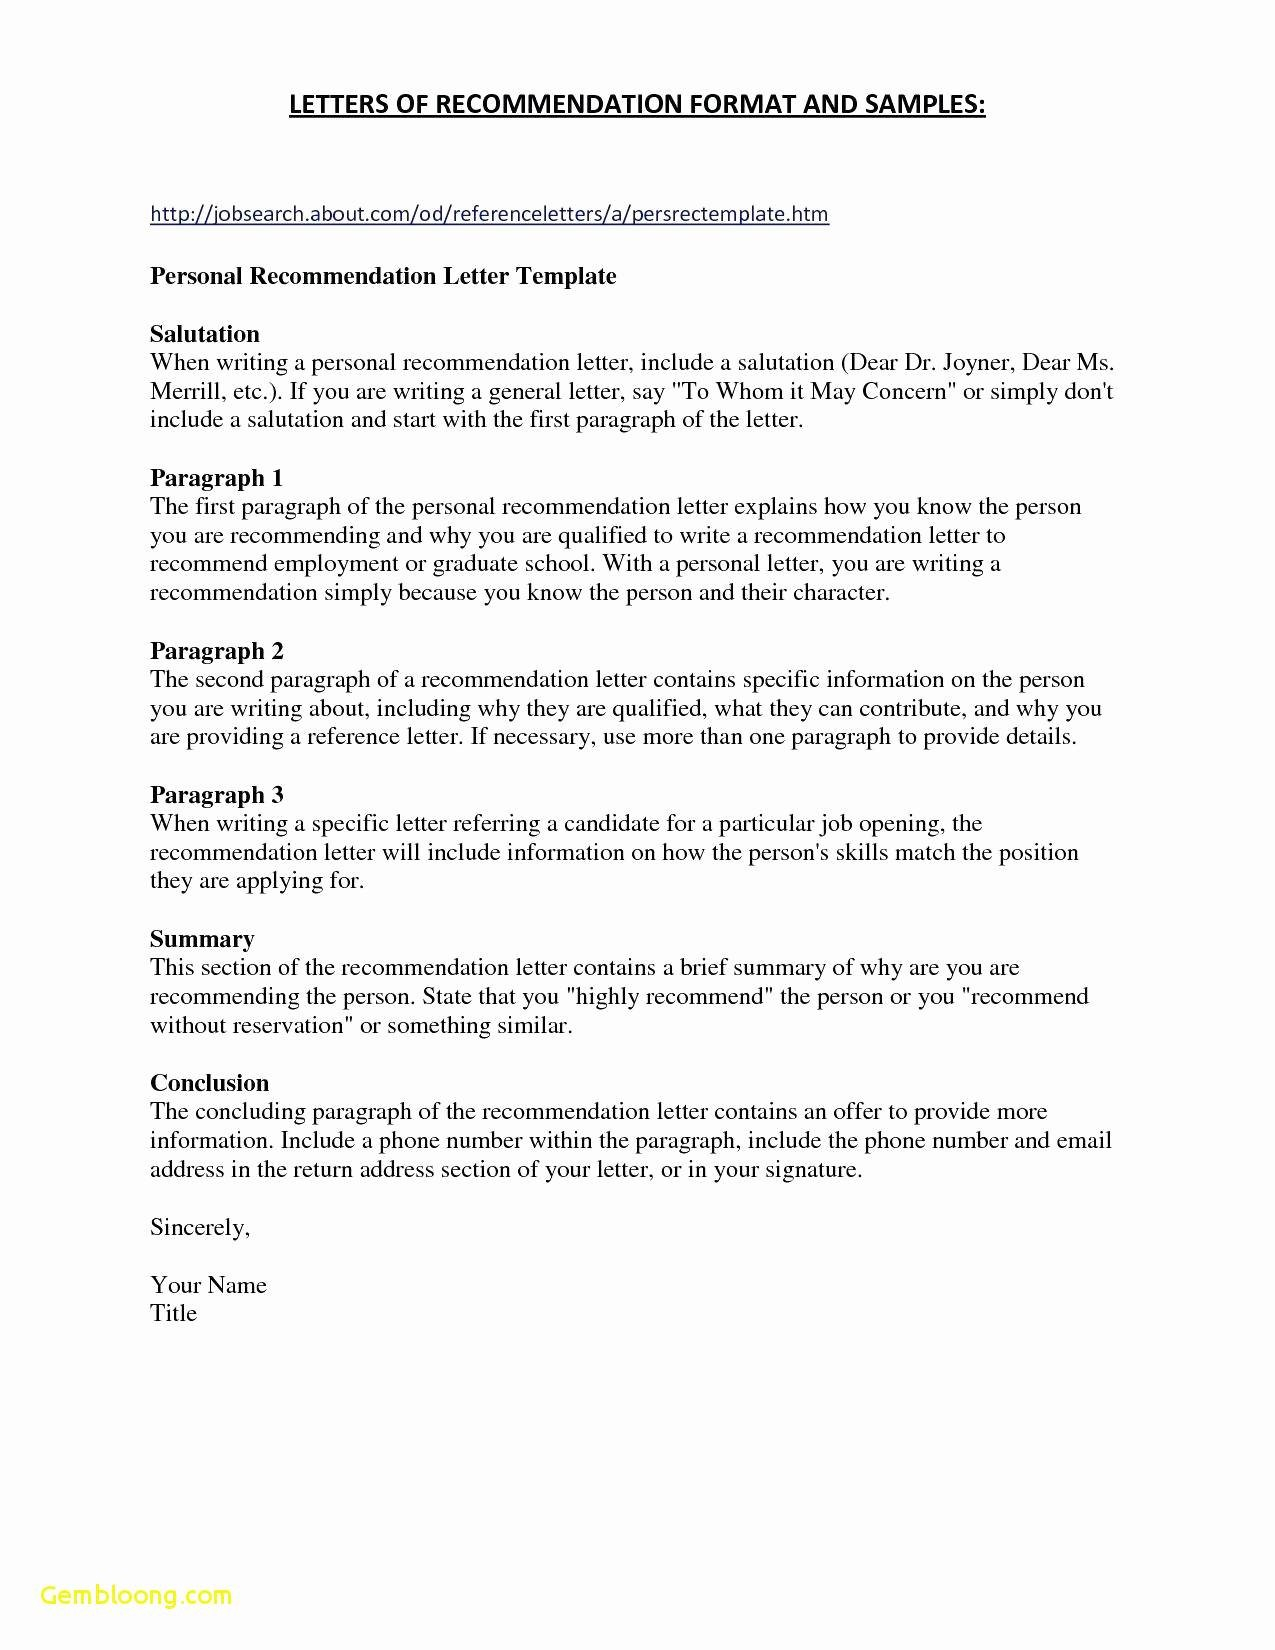 Apartment Offer Letter Template - Ceo Employment Contract Template